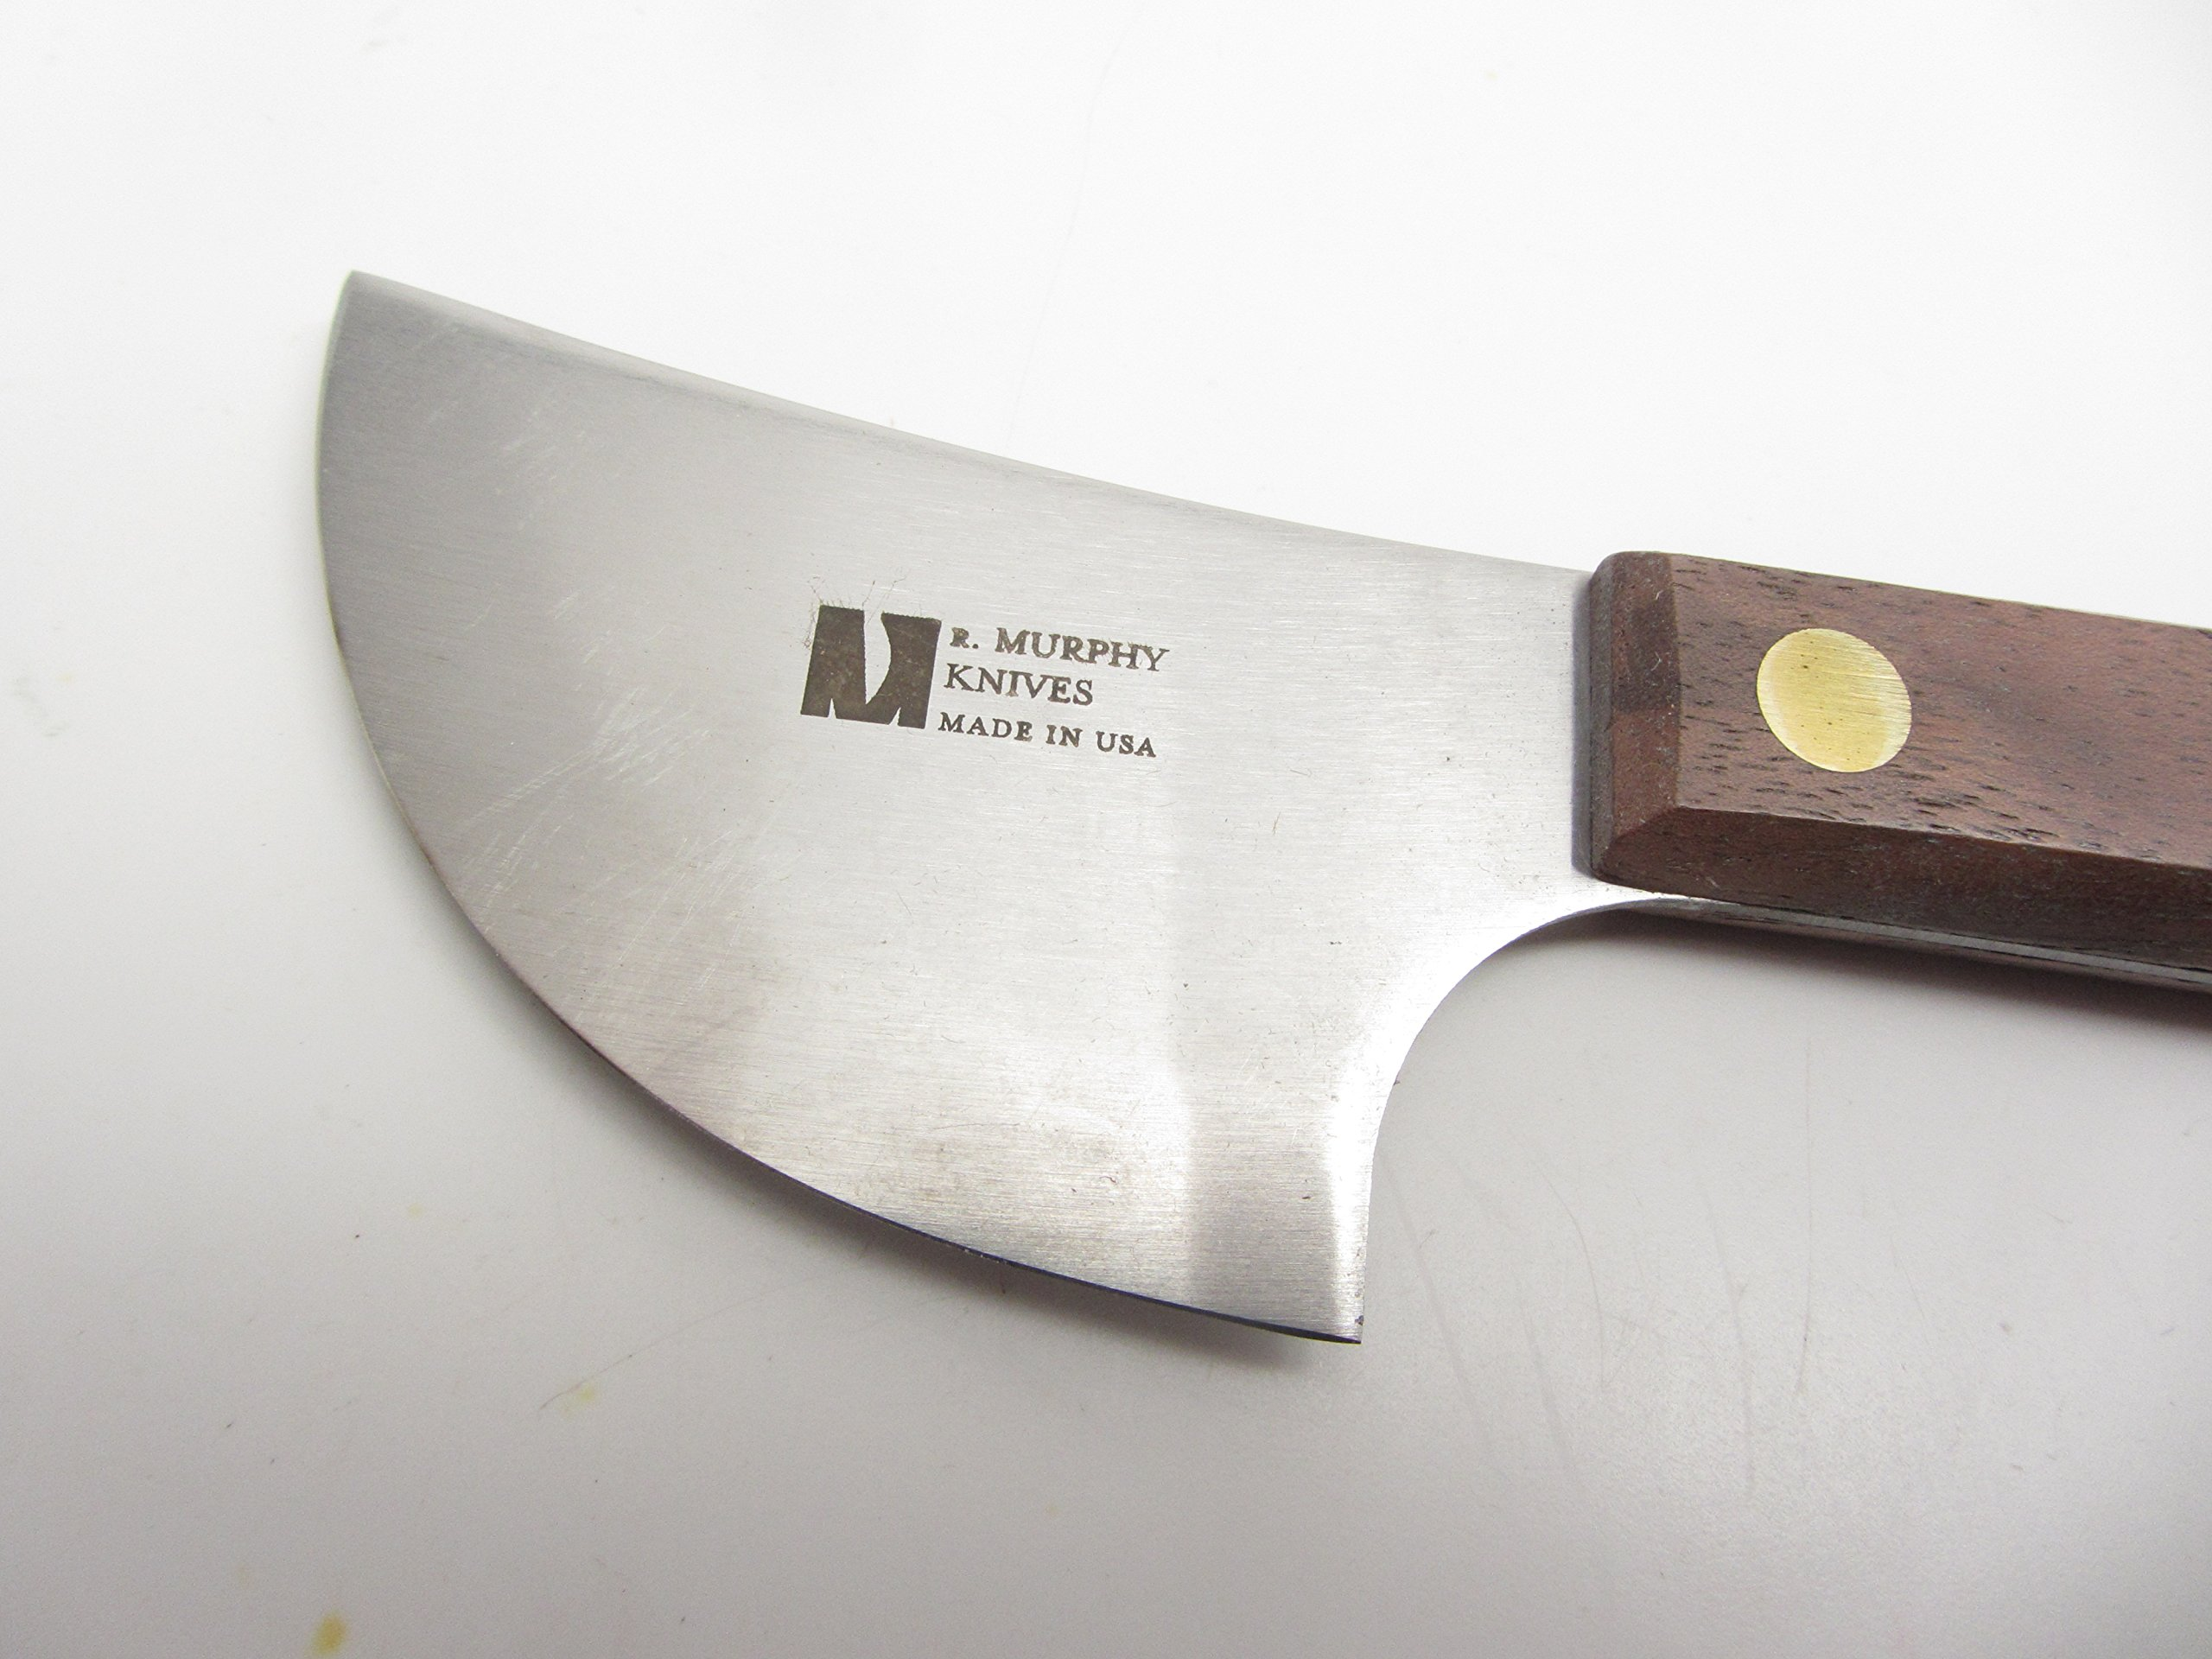 Murphy Lead Caming Head Knife Stained Glass Supplies Cheese Knife Leatherworking by UJ Ramelson Co